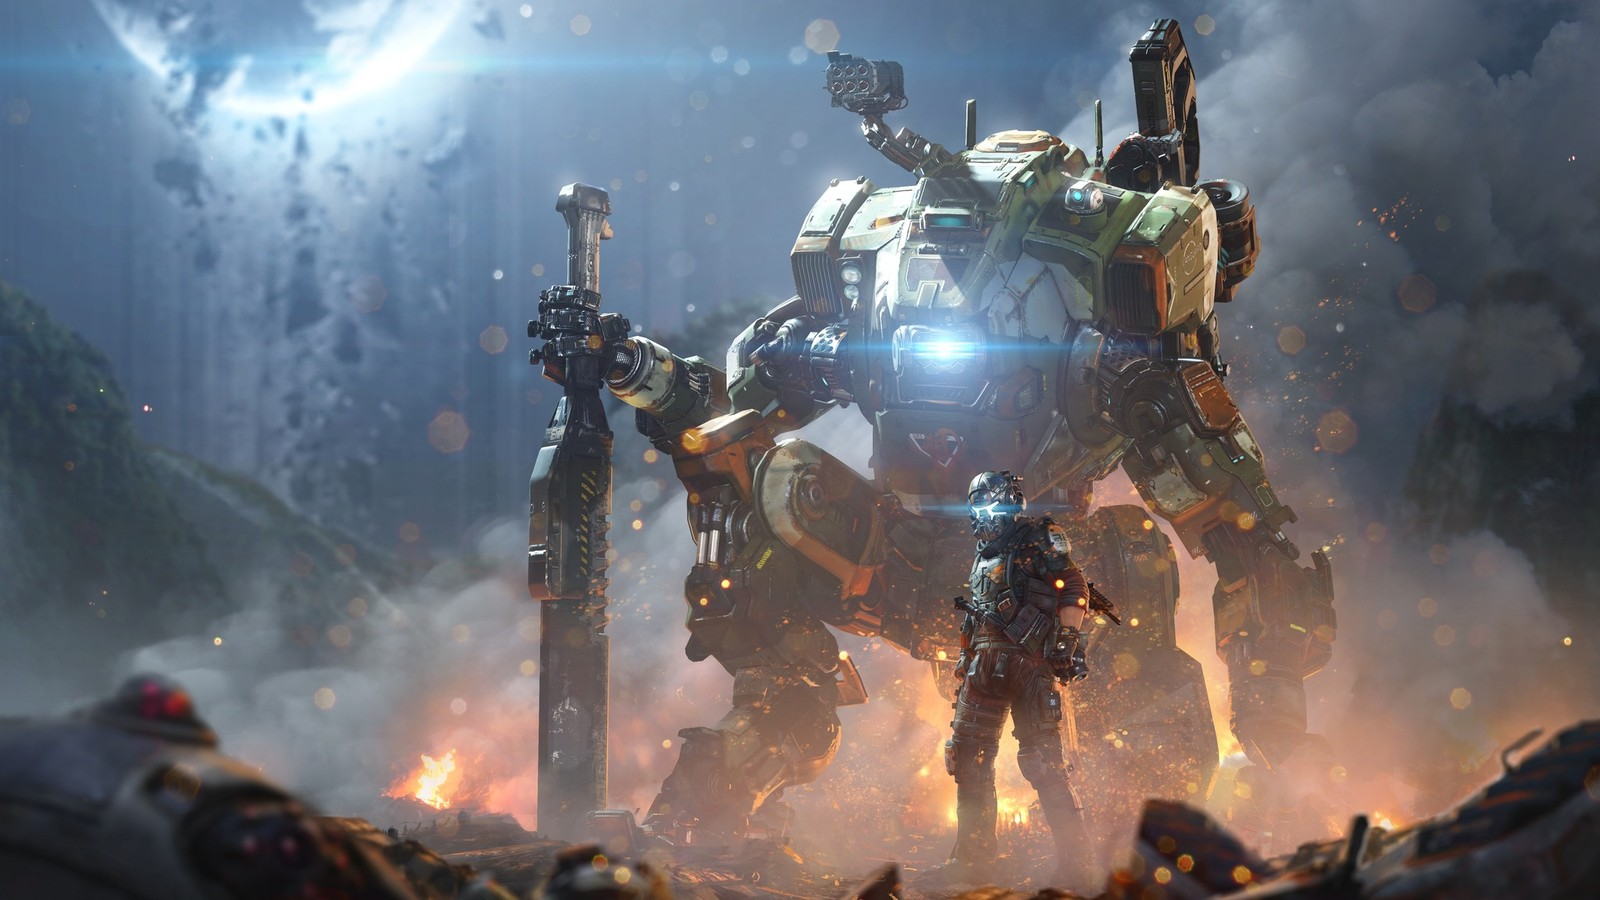 http://www.gamersdecide.com/sites/default/files/authors/u142583/titanfall-2-banner.jpg